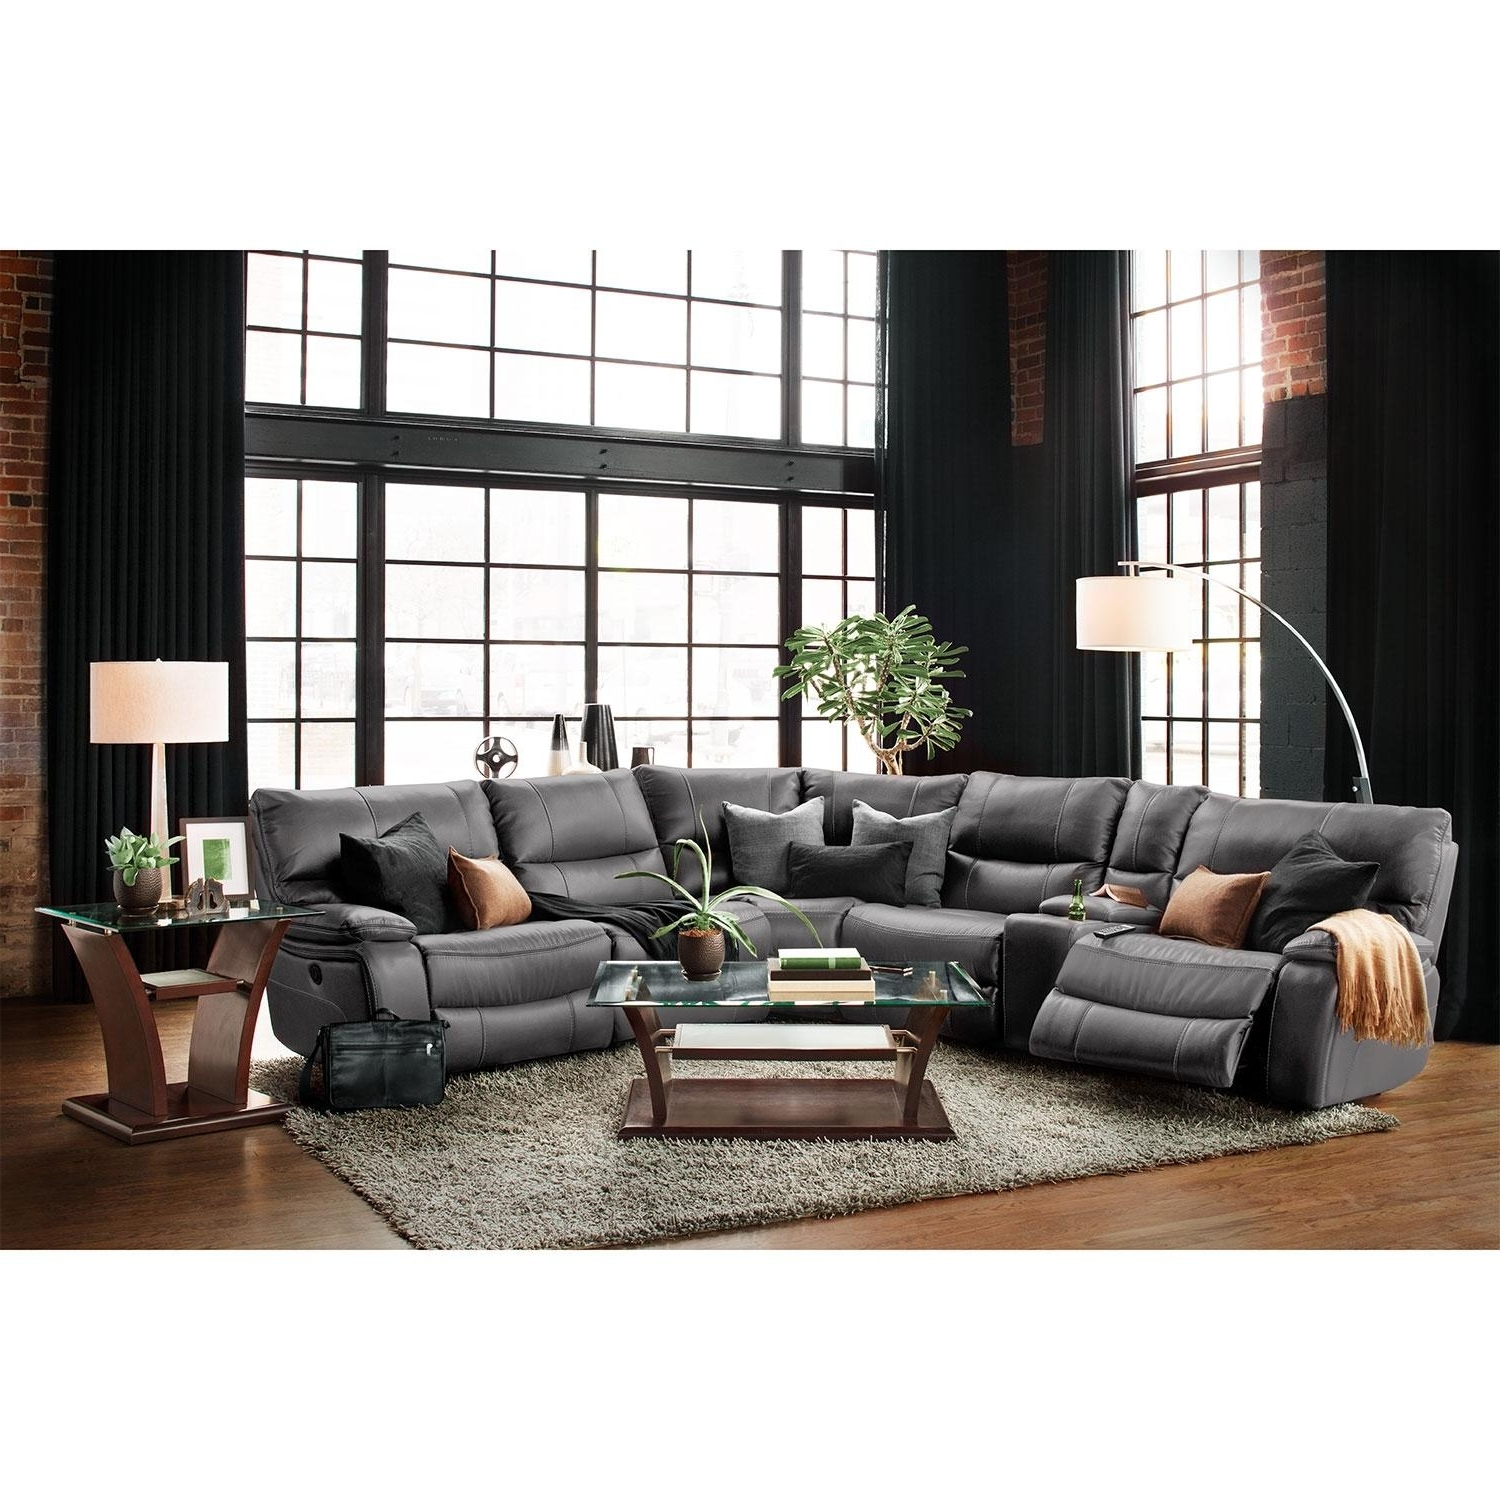 Furniture : Sectional Couch Costco Best Of La Z Boy Aspen Seven Throughout Recent Victoria Bc Sectional Sofas (View 5 of 20)